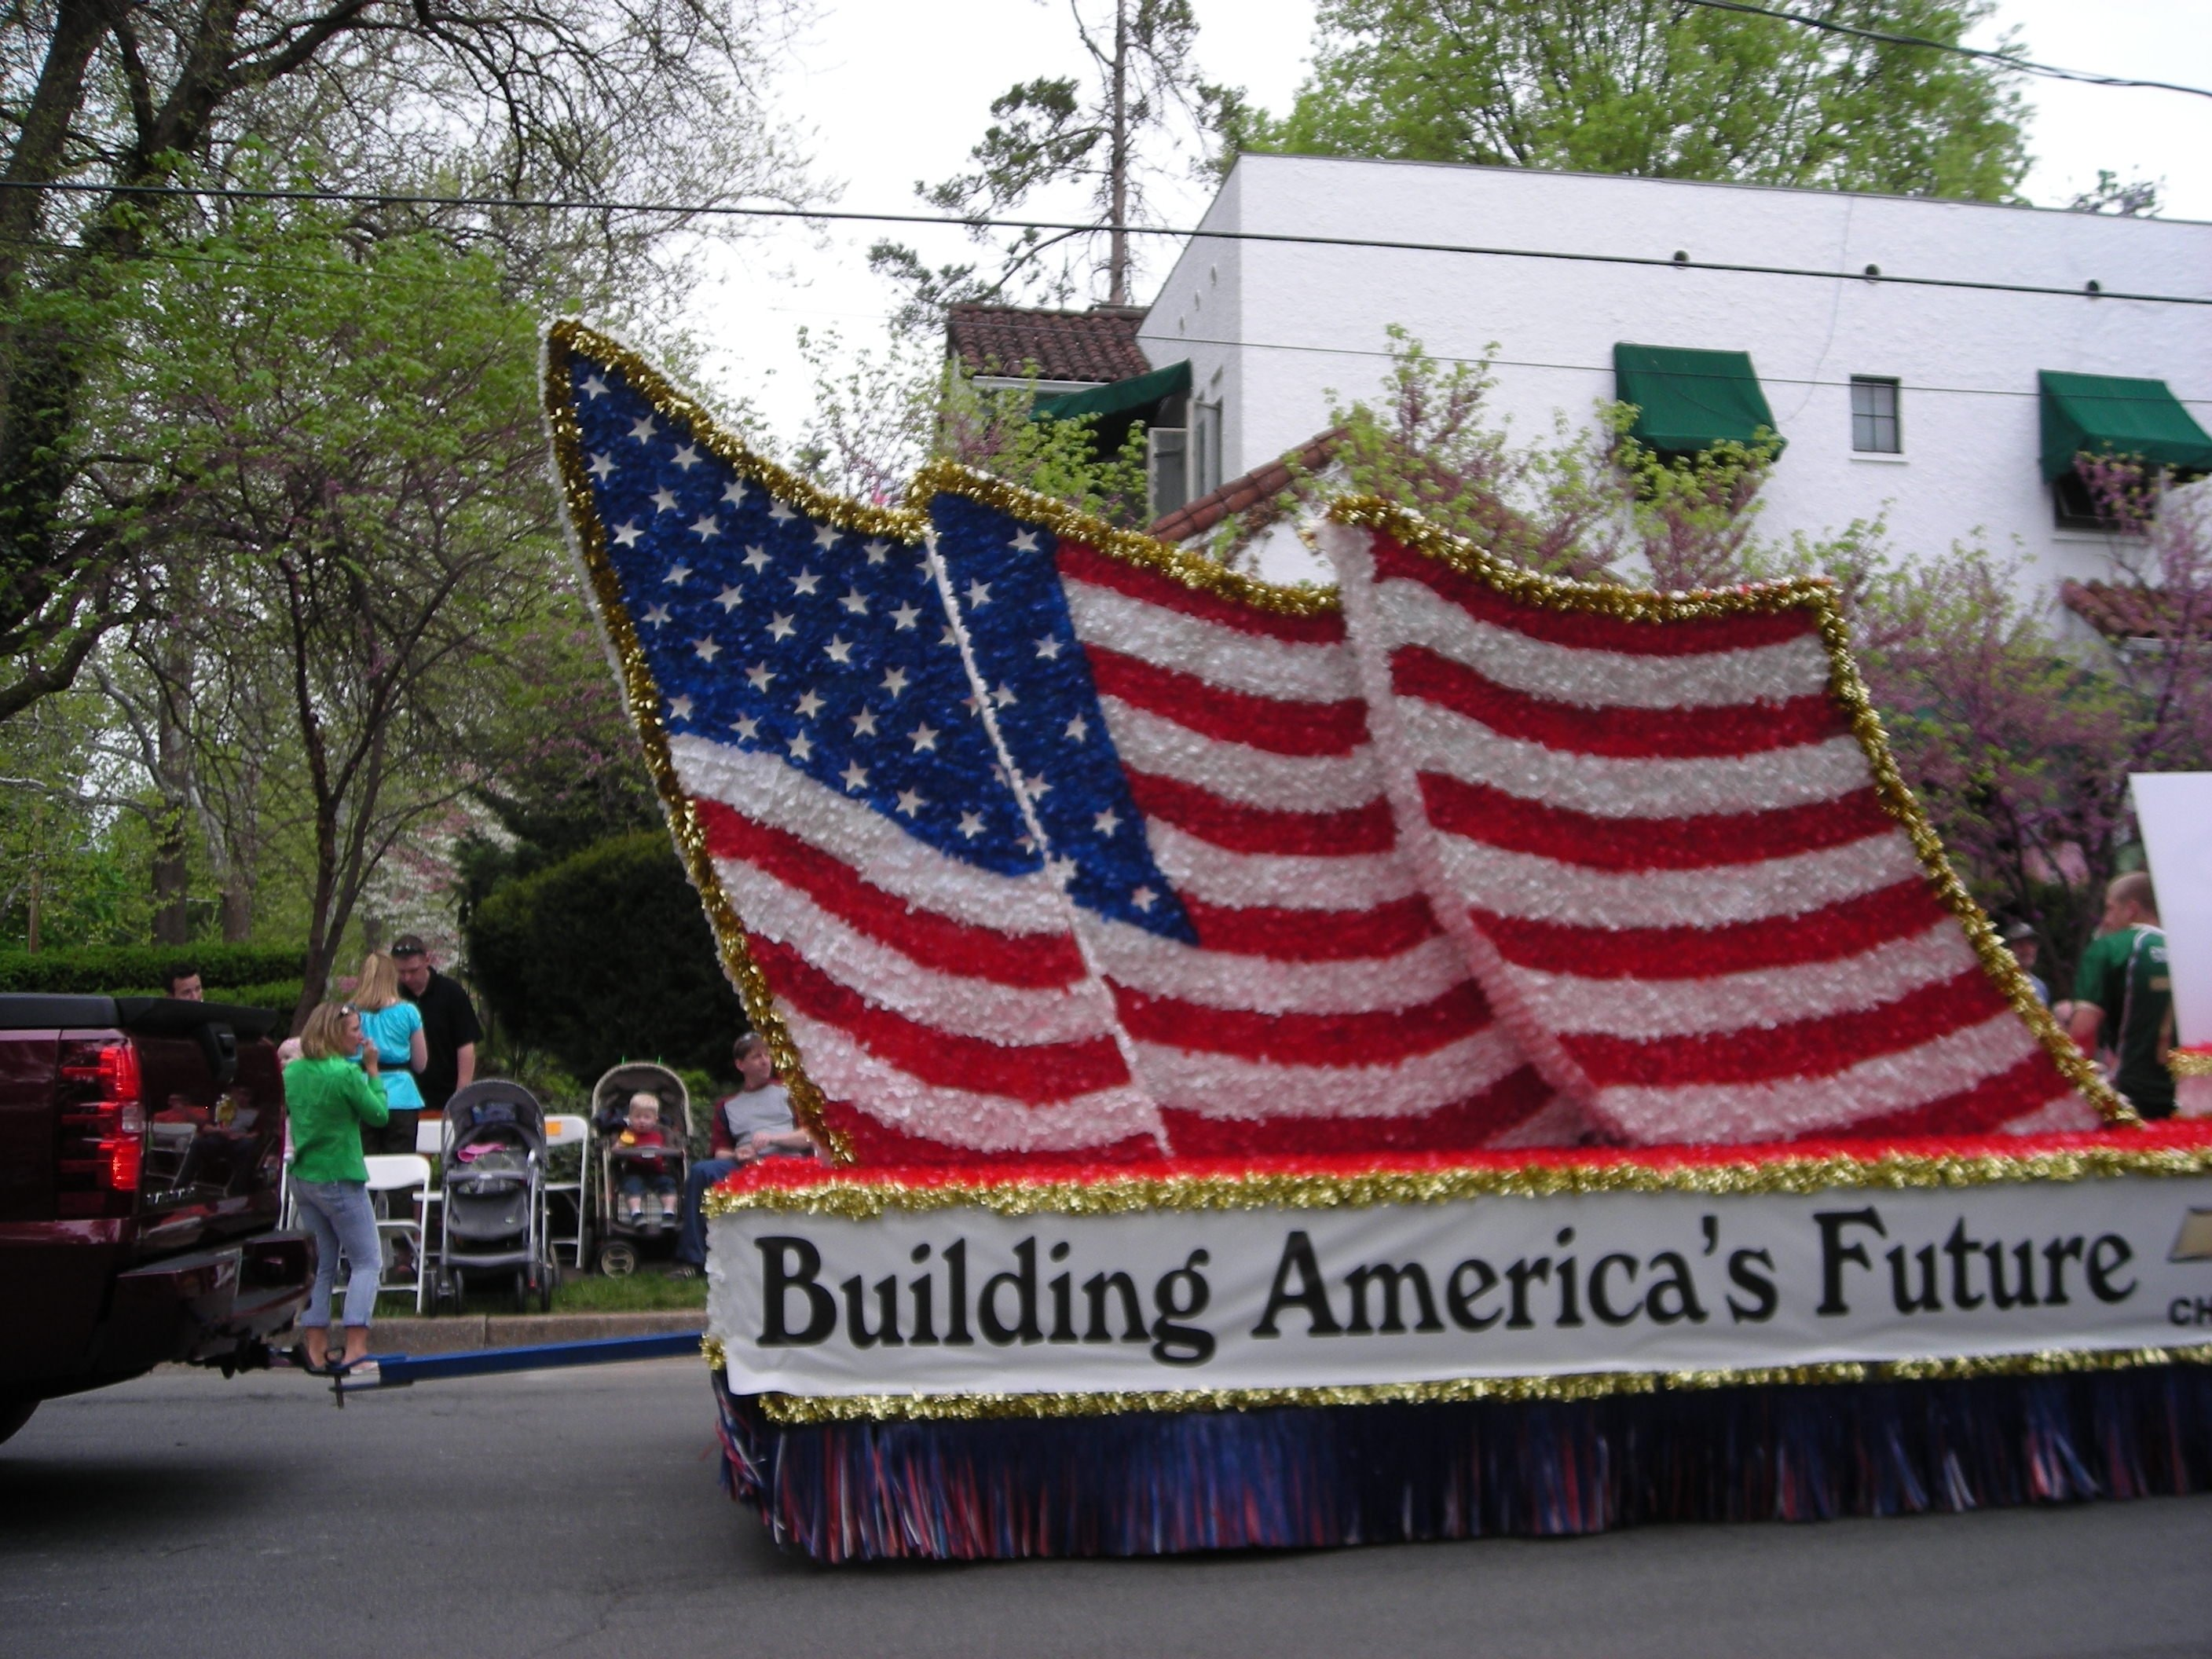 10 Famous 4Th Of July Parade Ideas the creative 4th of july parade float ideas abetterbead gallery 2020